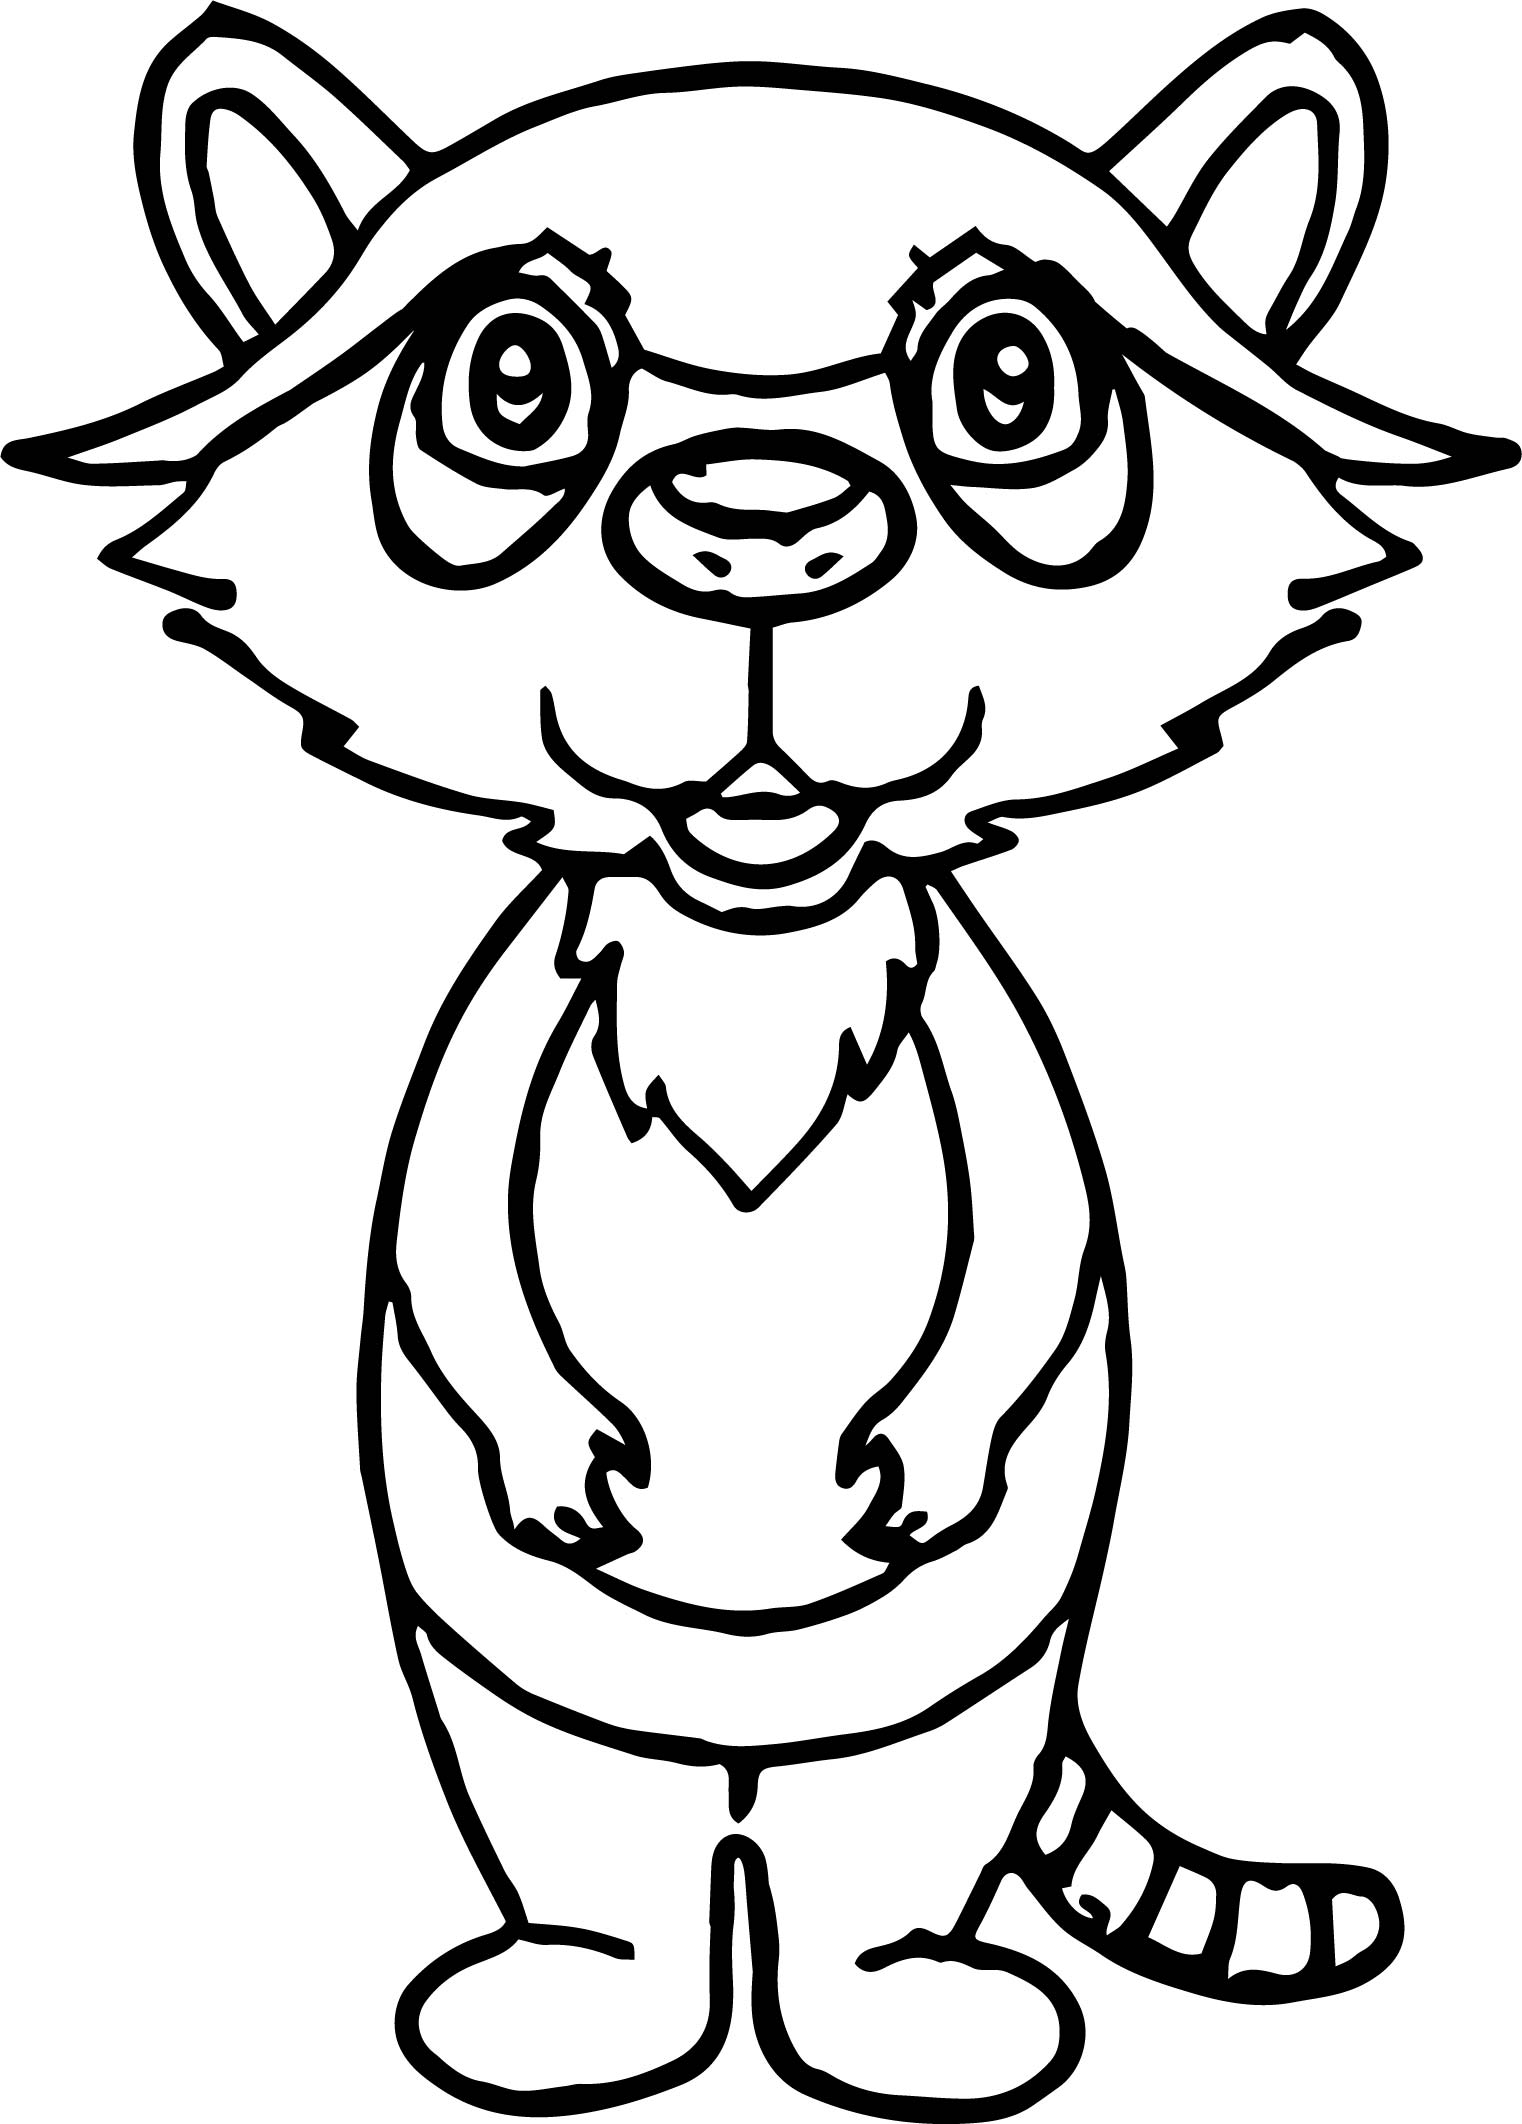 Raccoon Face Page Coloring Pages